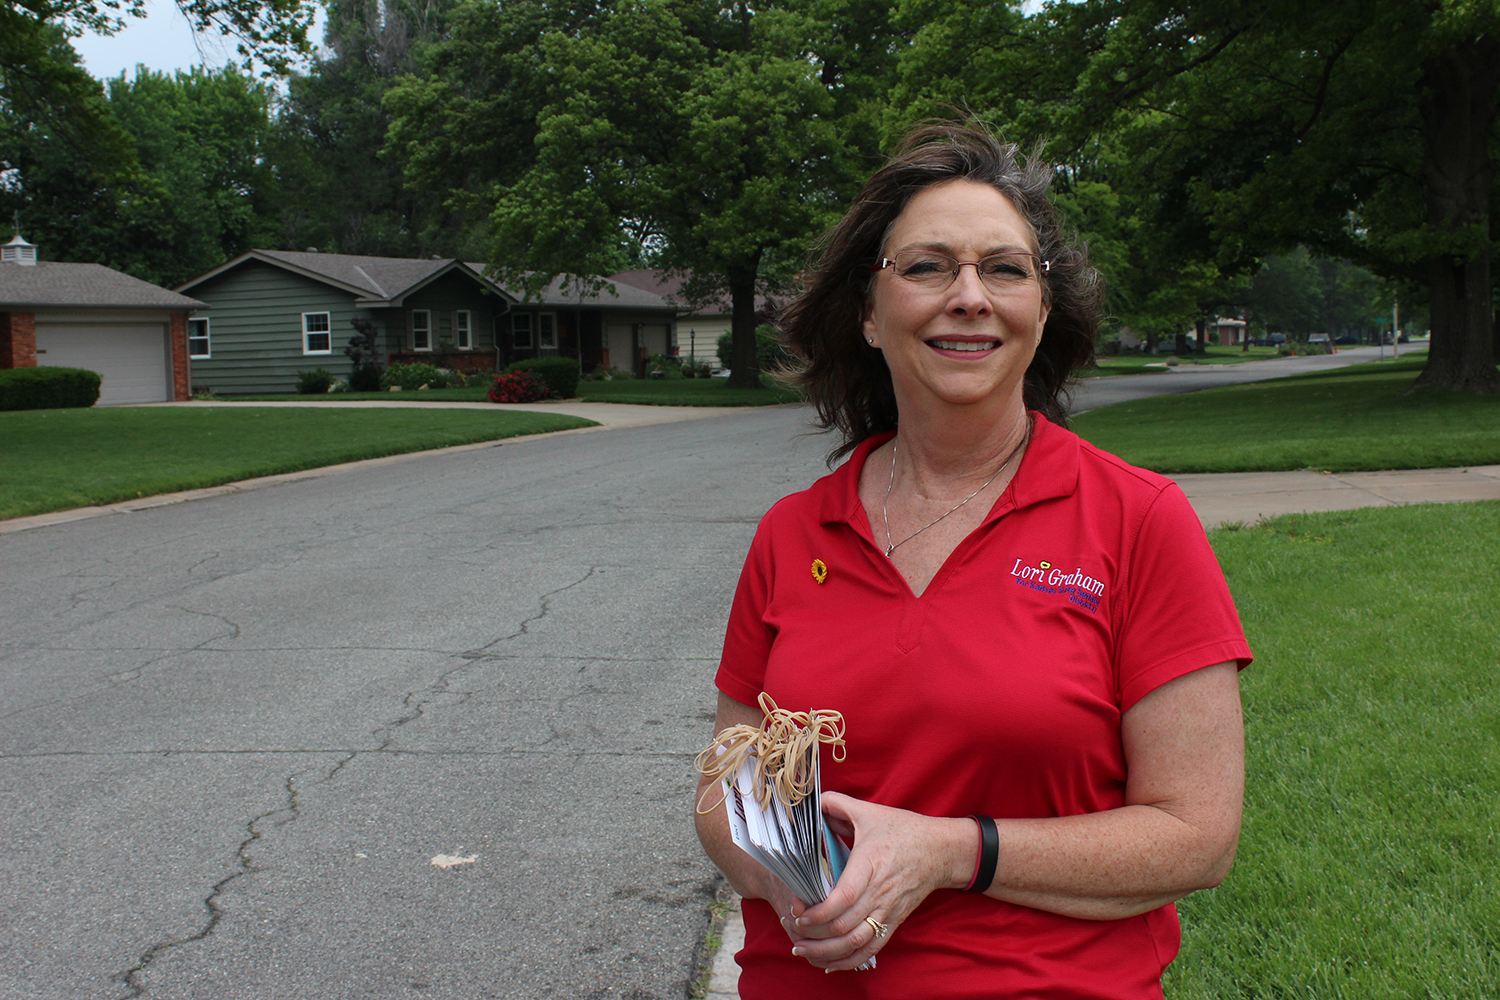 Lori Graham is running for the Kansas State Senate. She's facing State Representative Gene Suellentrop in the August 2 primary. (Photo credit: Sean Sandefur)